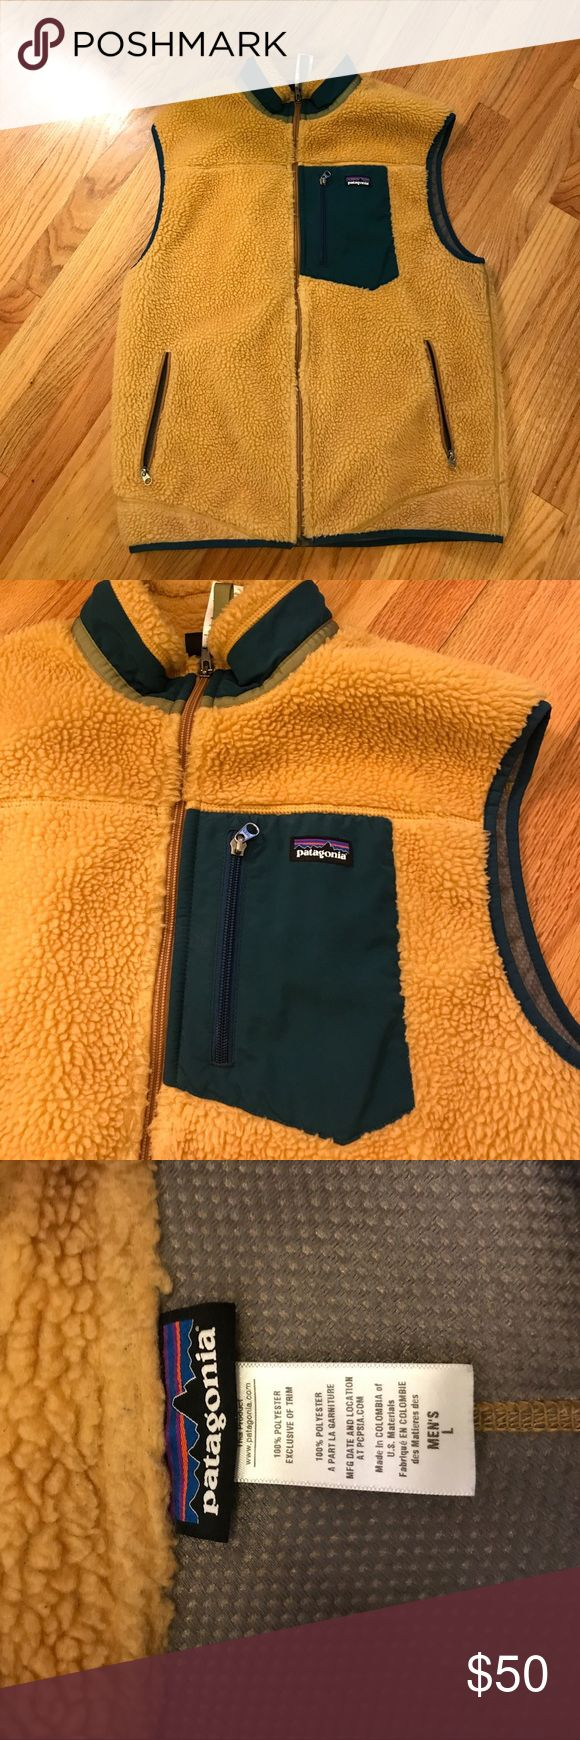 Men's Patagonia fleece best Men's fleece vest - yellow and green. Good condition. Size L. Patagonia Jackets & Coats Vests